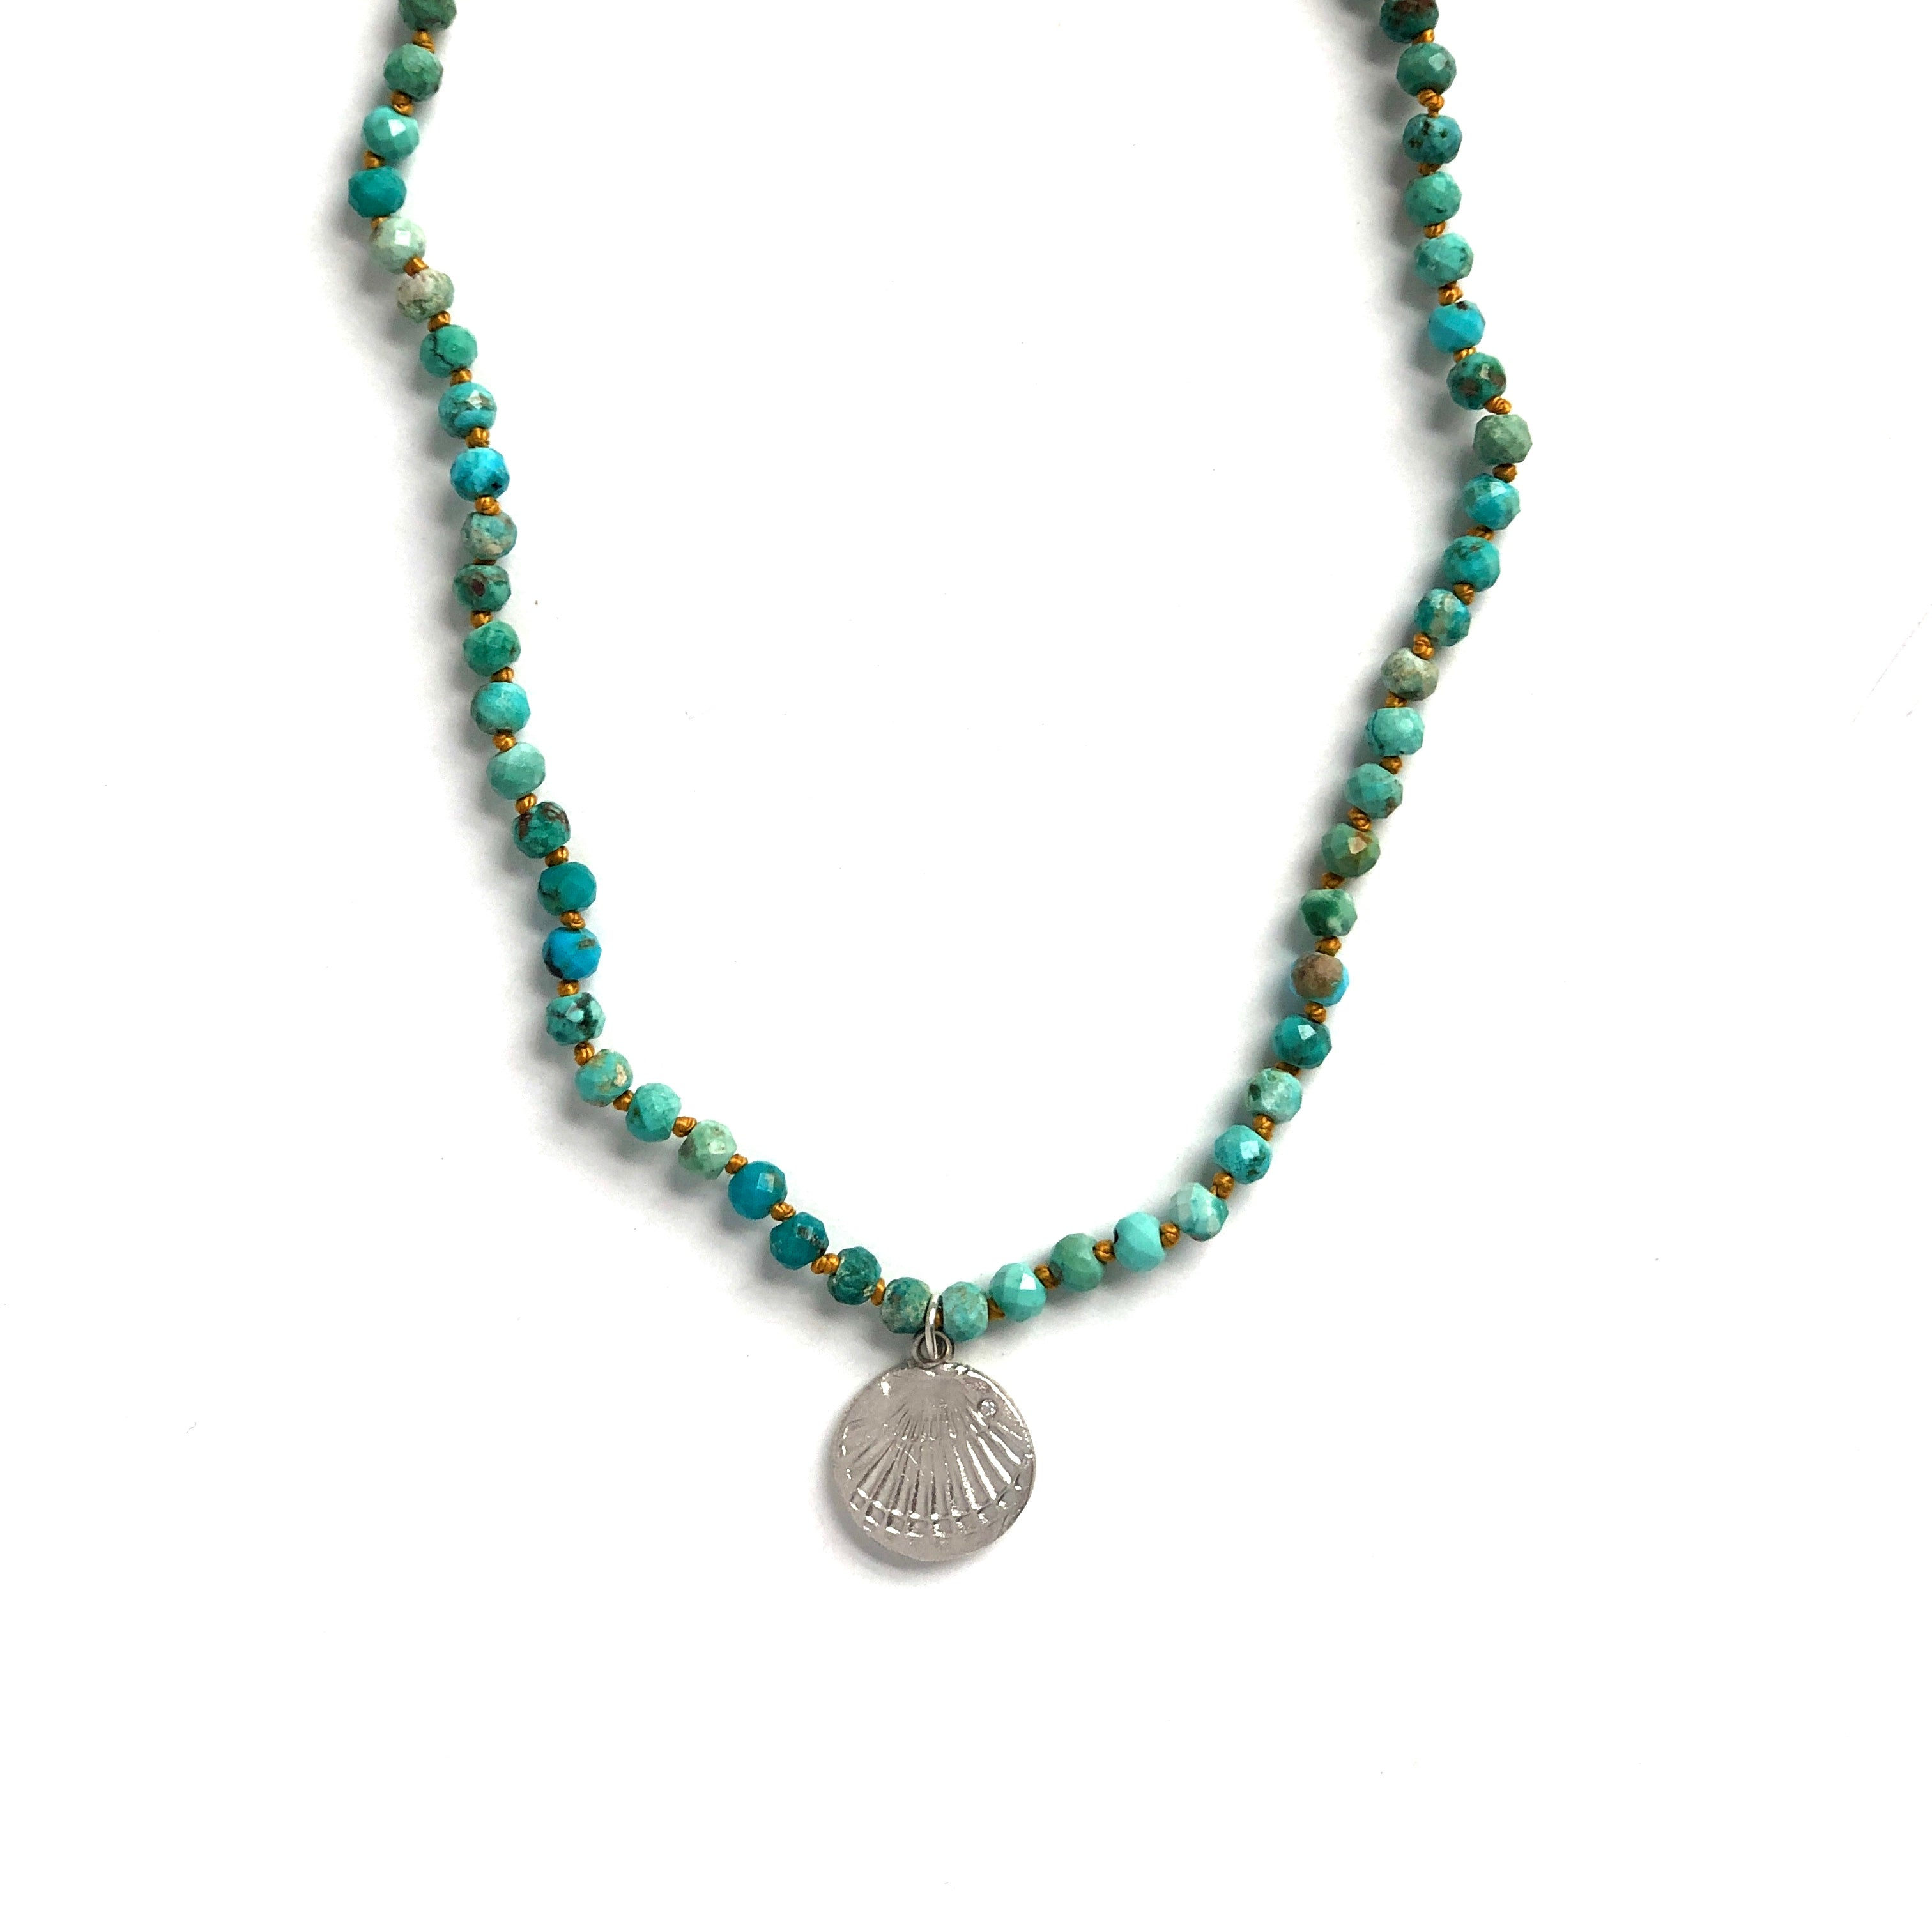 One of a Kind Turquoise Knotted Bead Necklace Shell Silver 20040 - MAS Designs